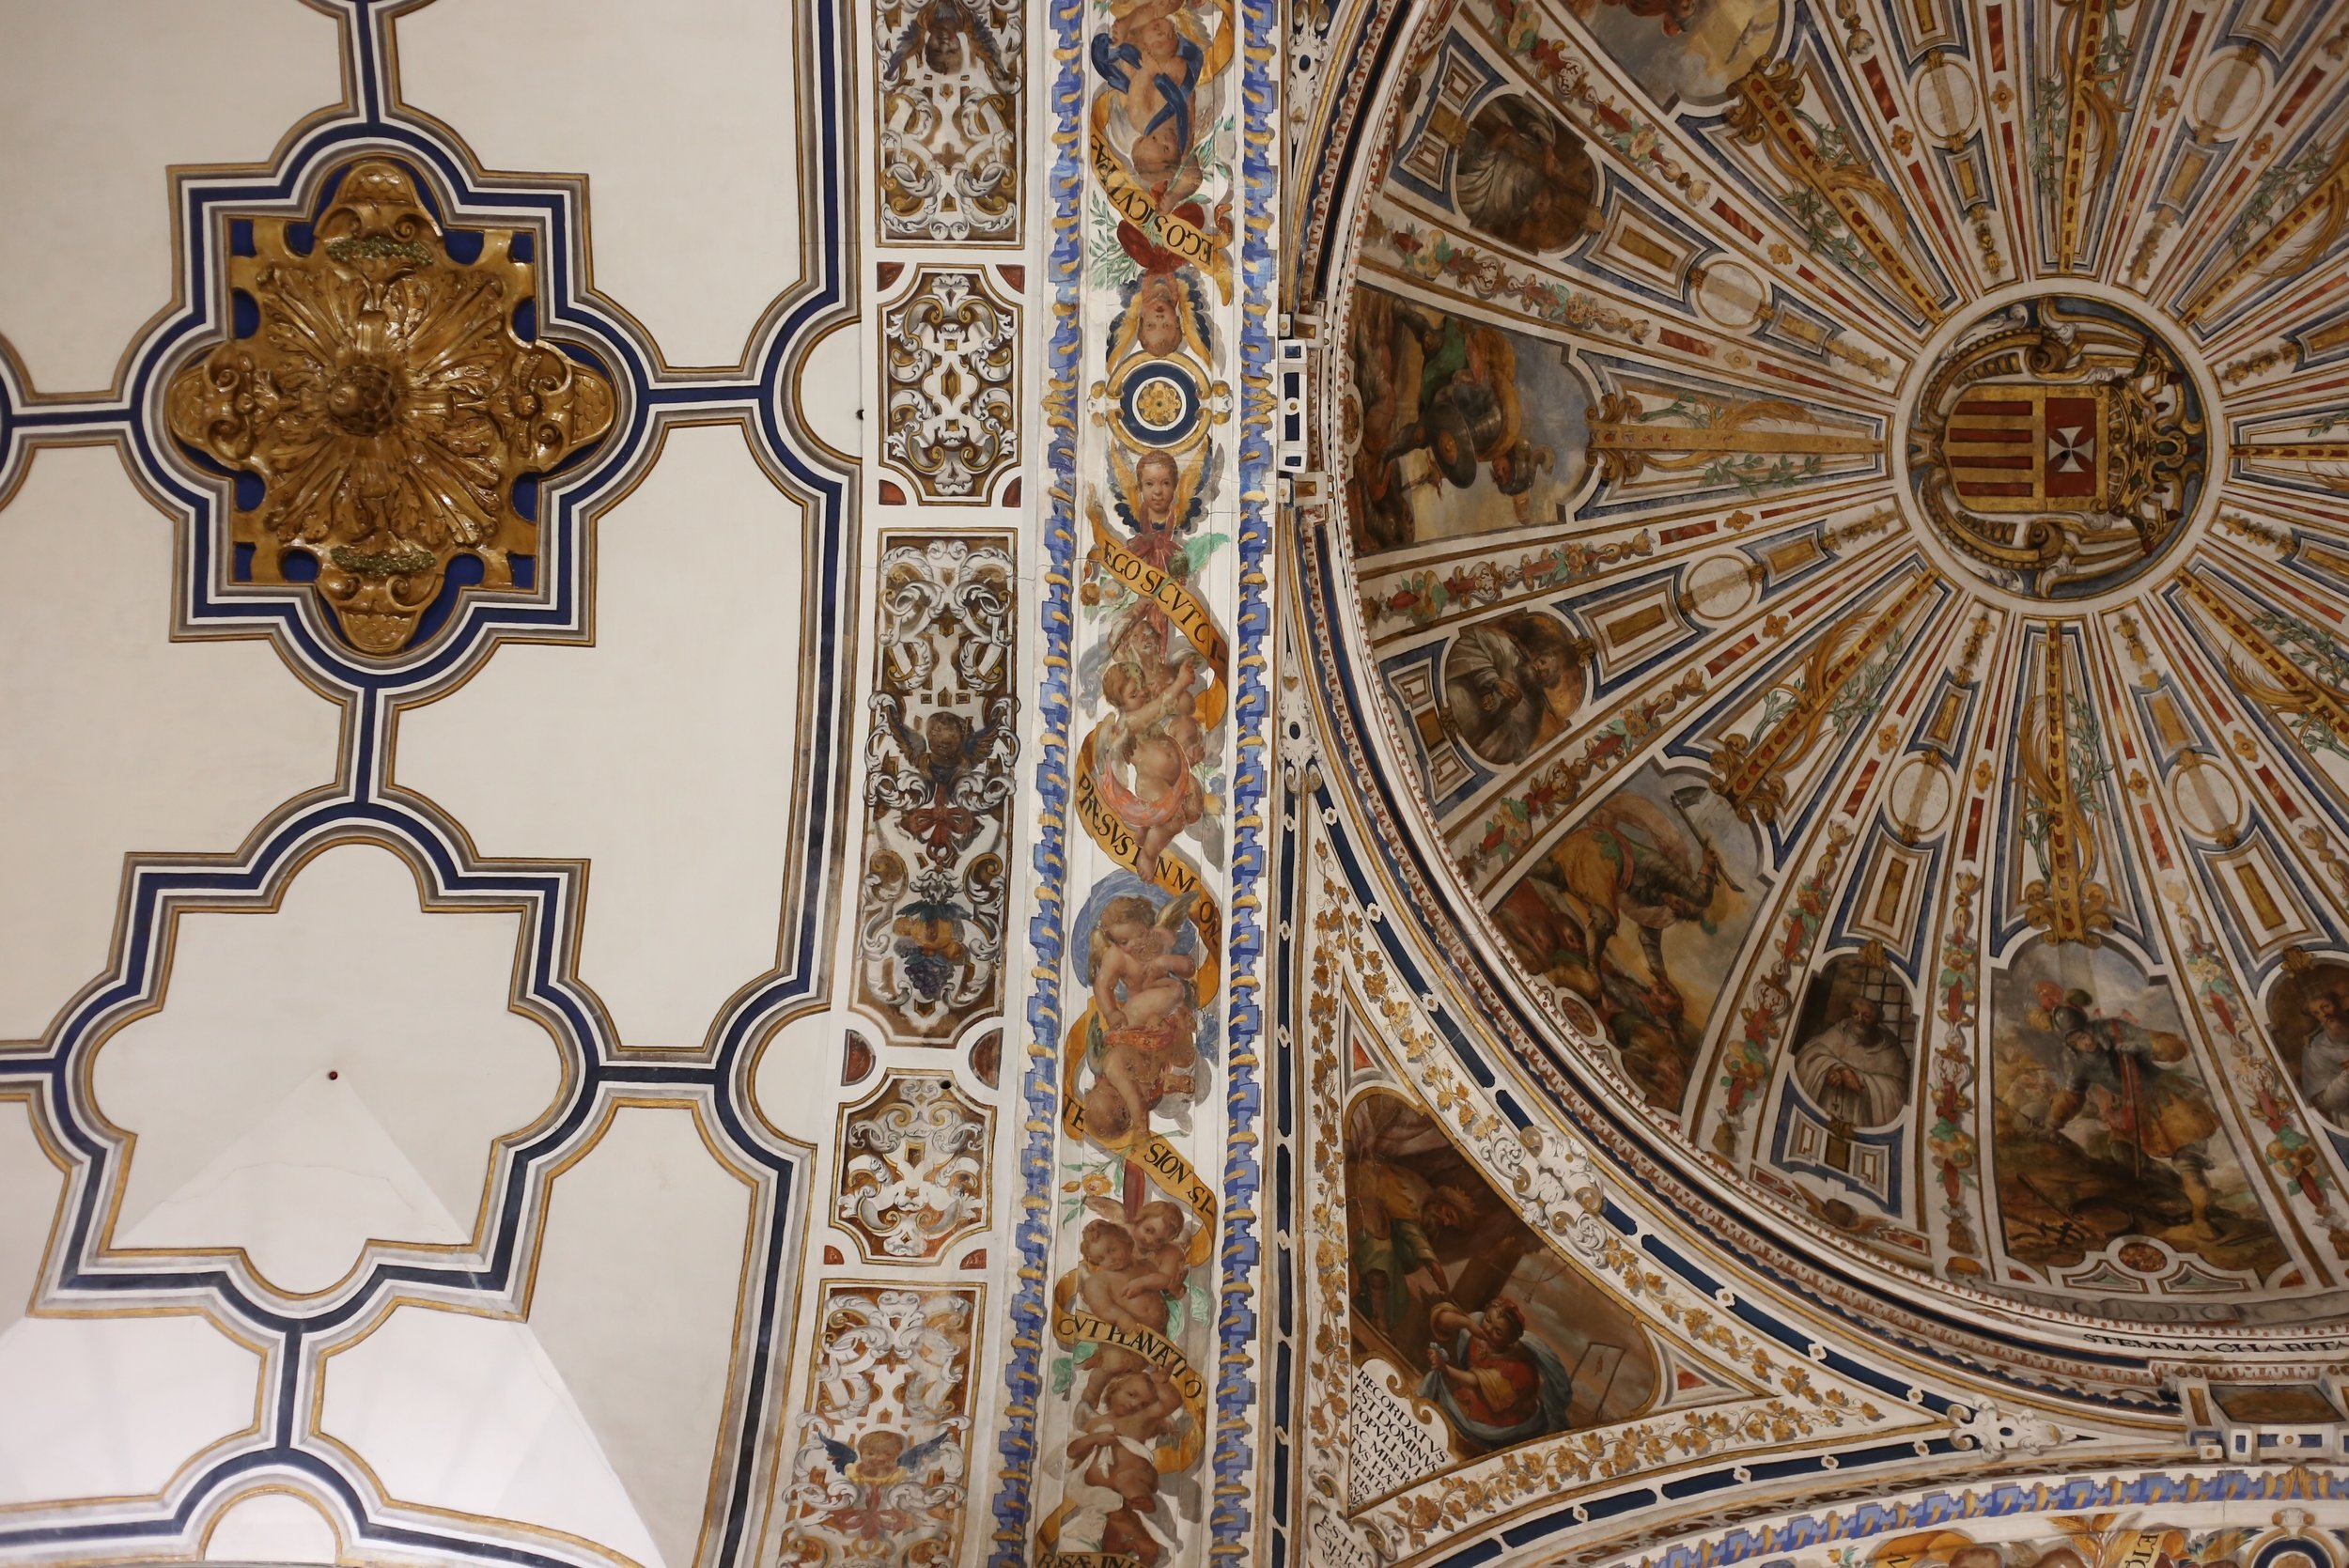 painted ceiling sevilla